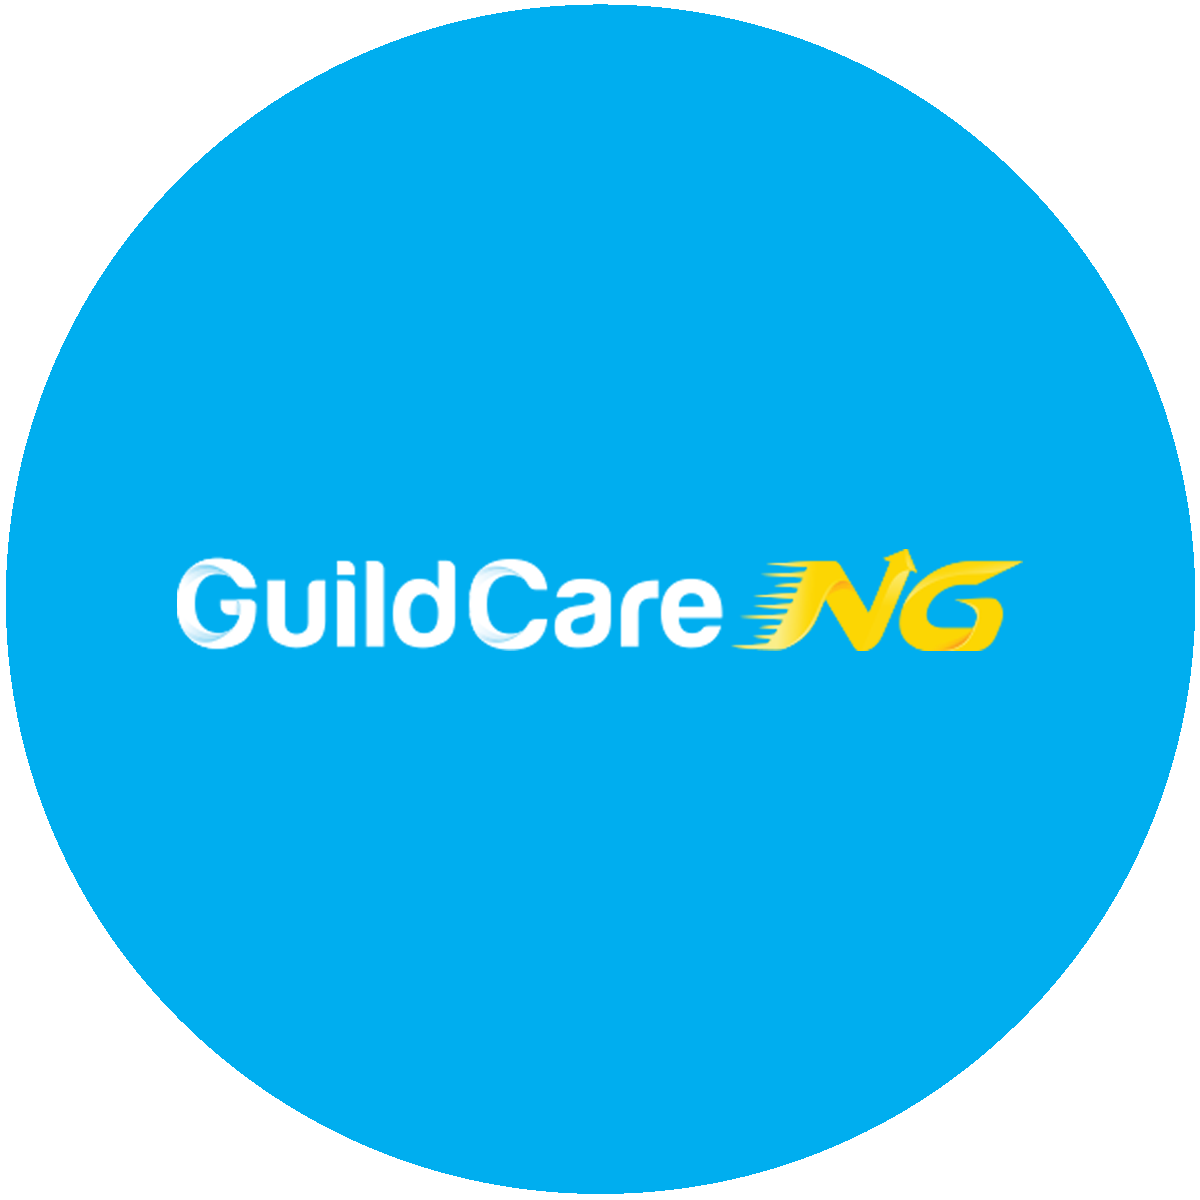 Link to GuildCare